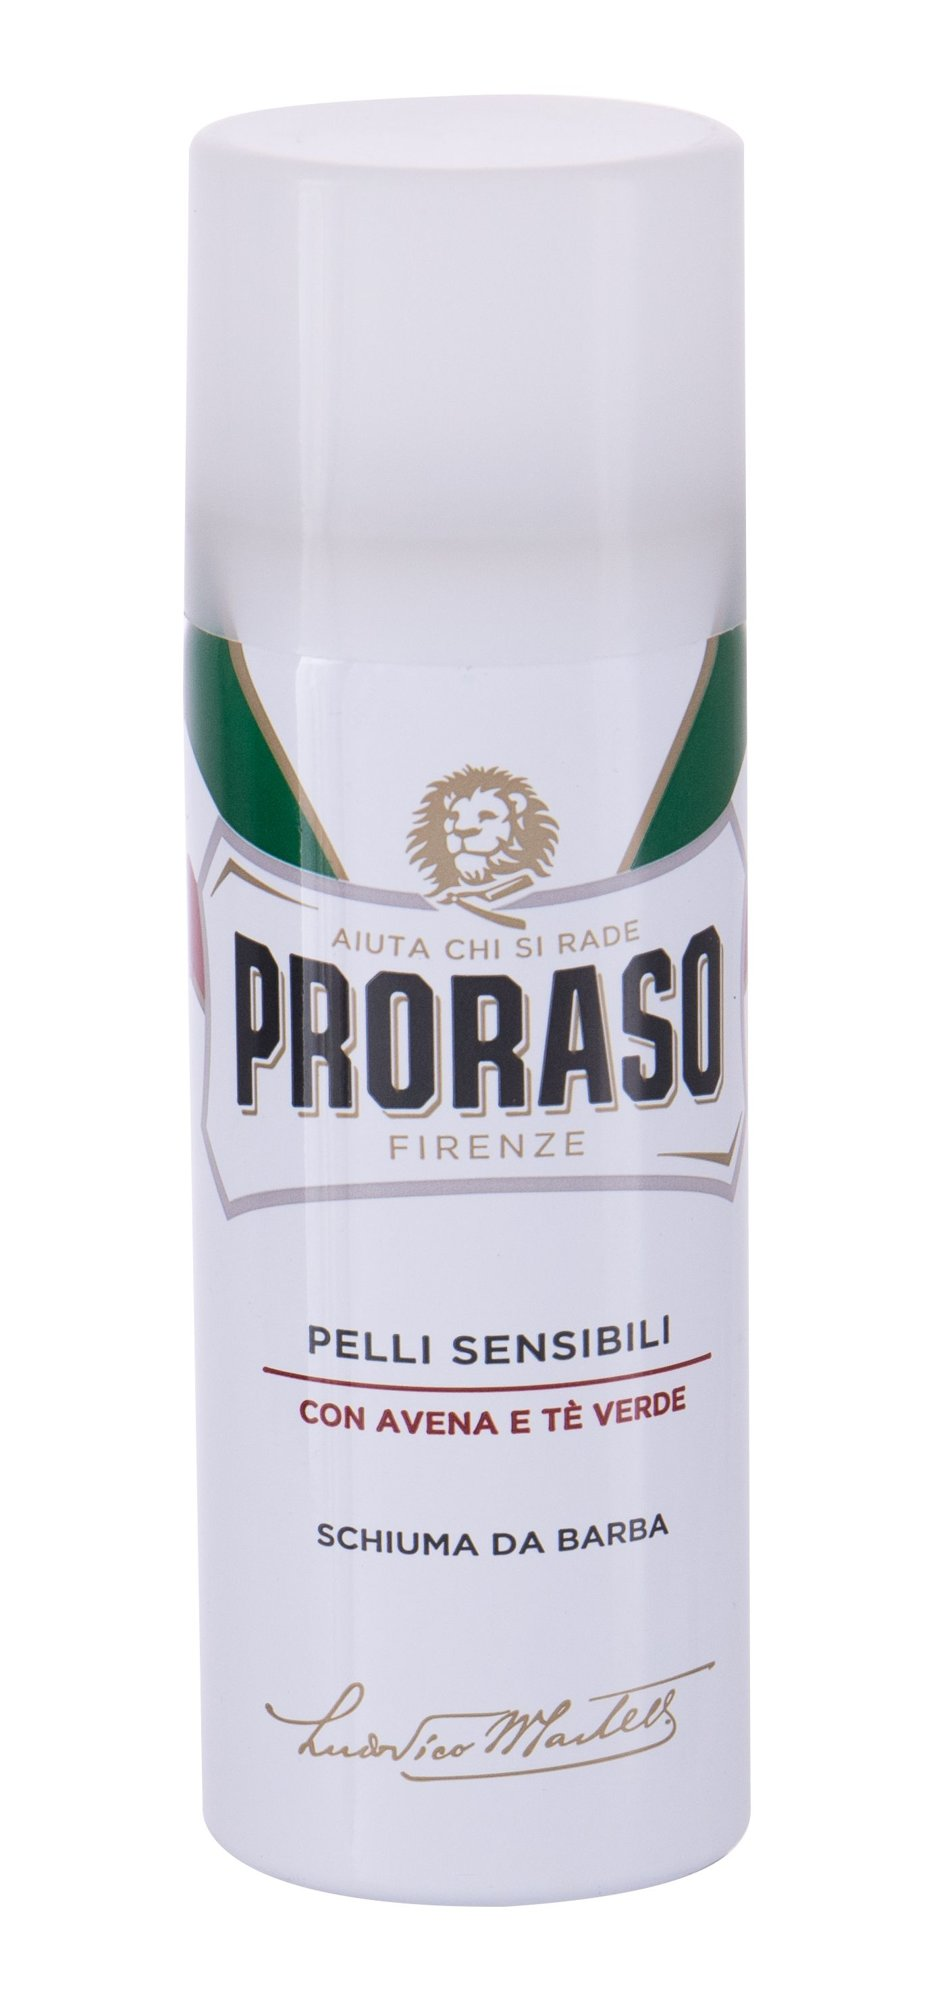 PRORASO White Shaving Foam, Hab na holenie 50ml